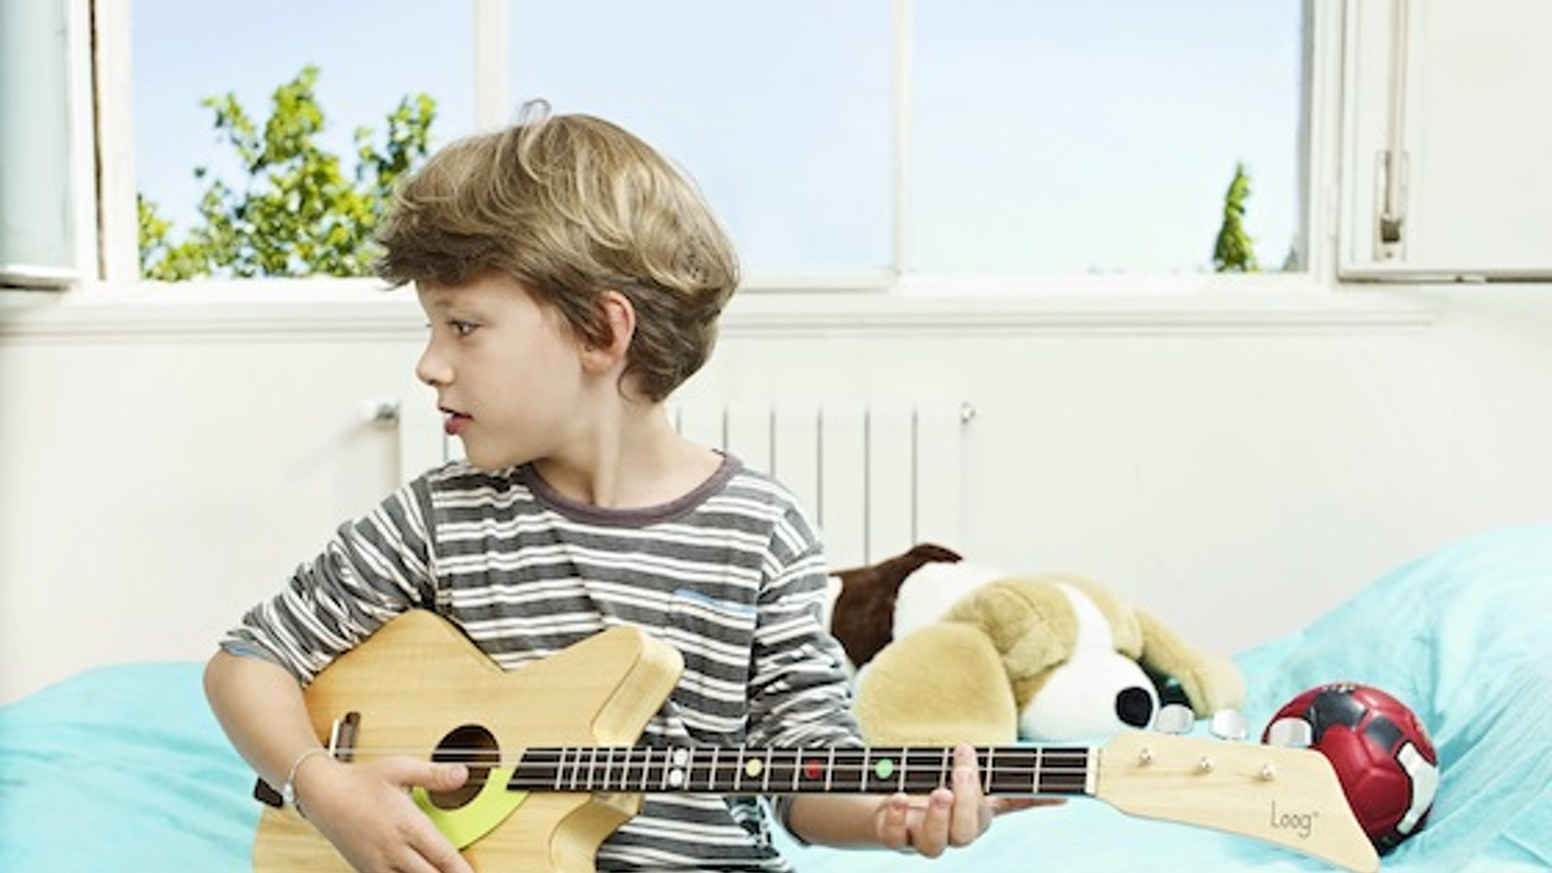 Loog Guitars is a line of small, 3-string guitars designed to make it fun and easy for kids to play music.